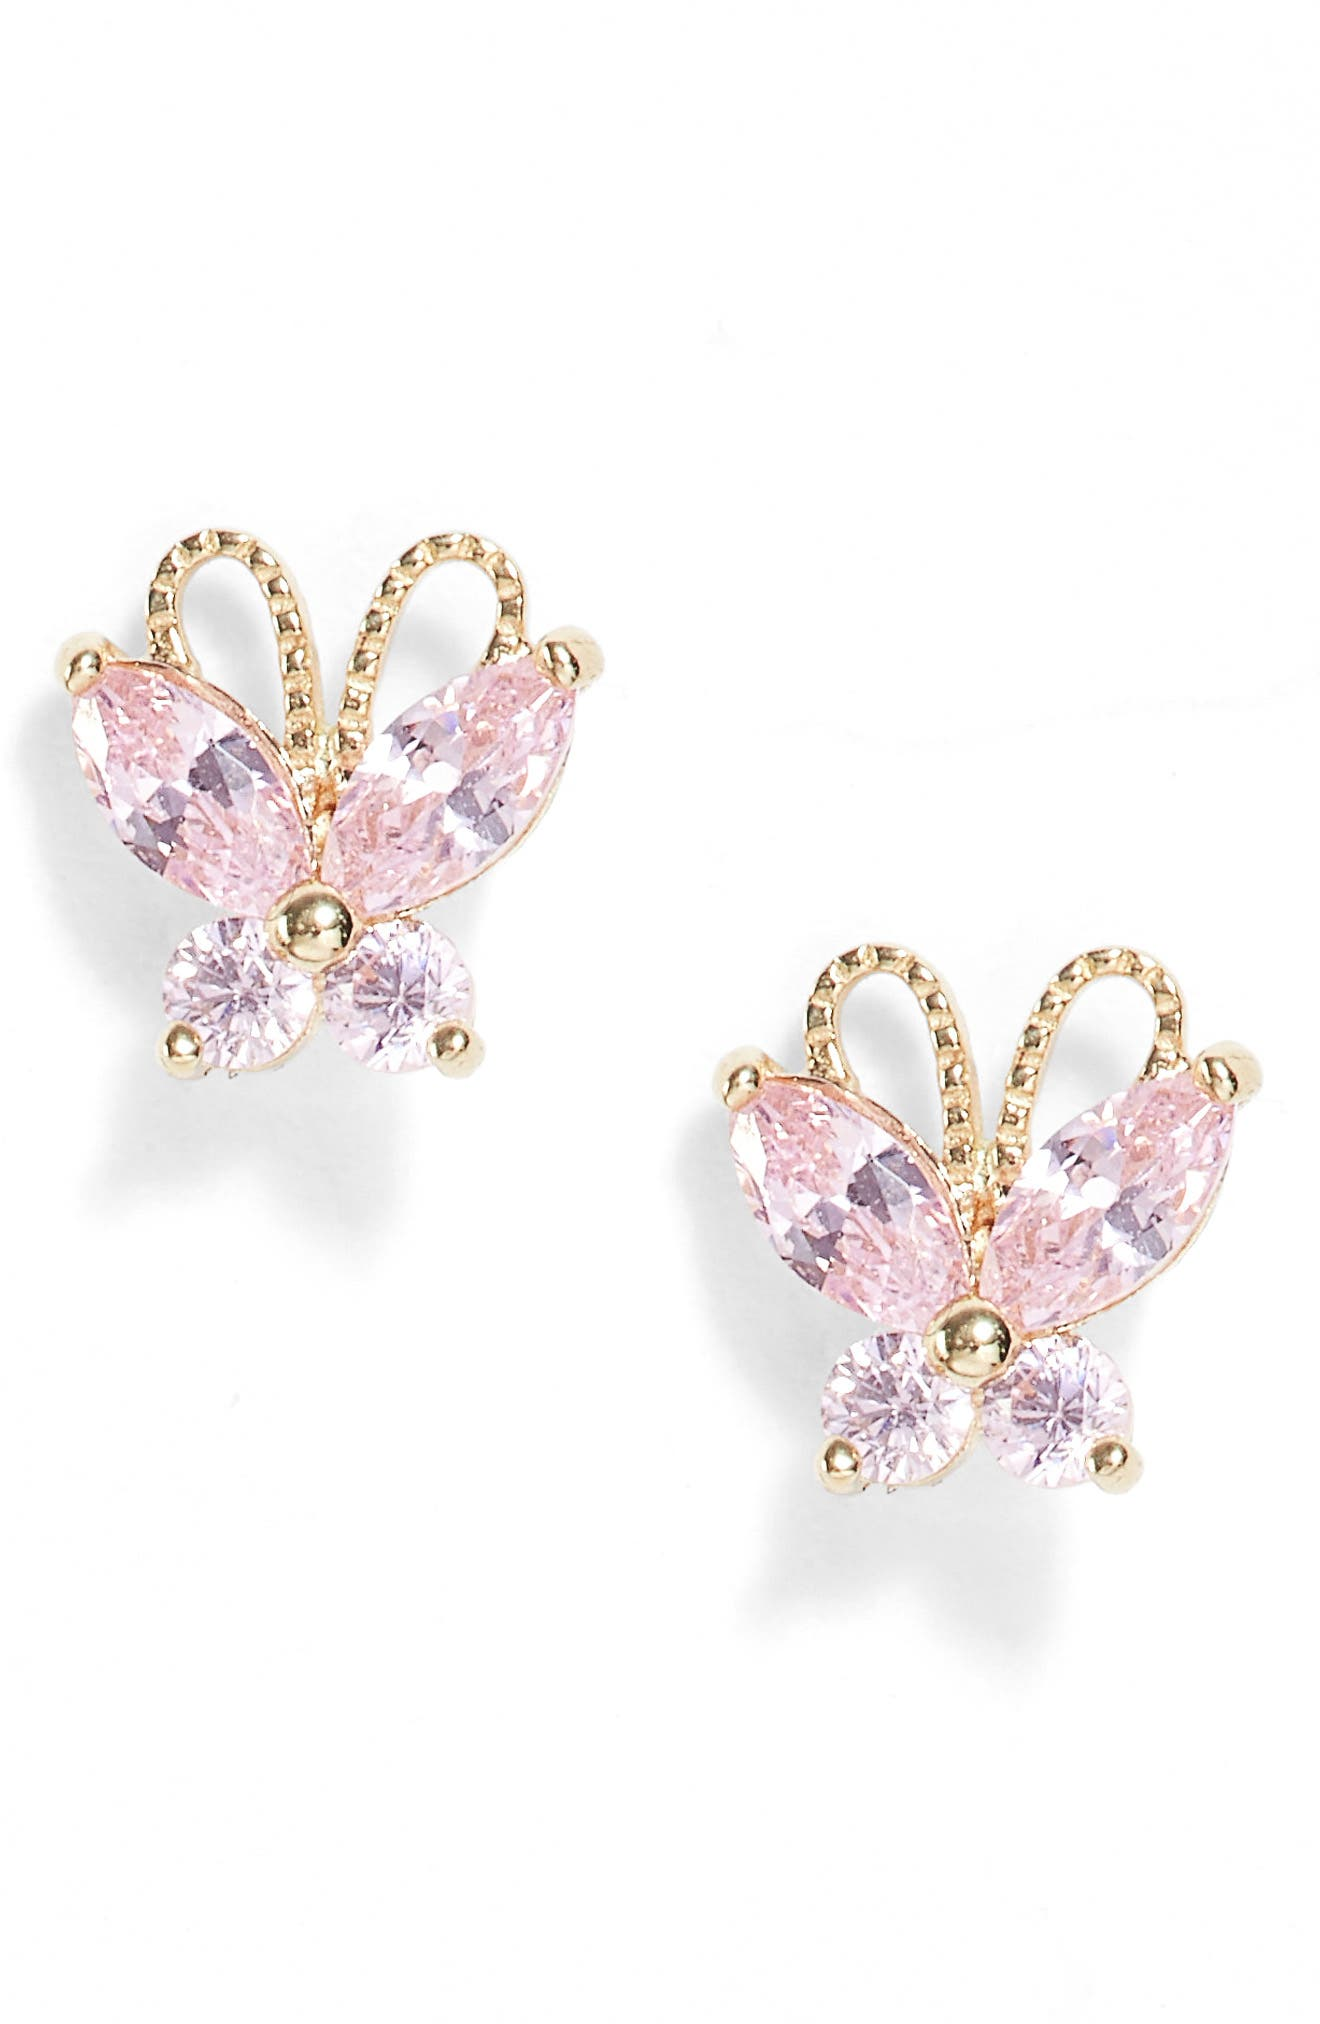 14k Gold & Pink Cubic Zirconia Butterfly Earrings,                             Main thumbnail 1, color,